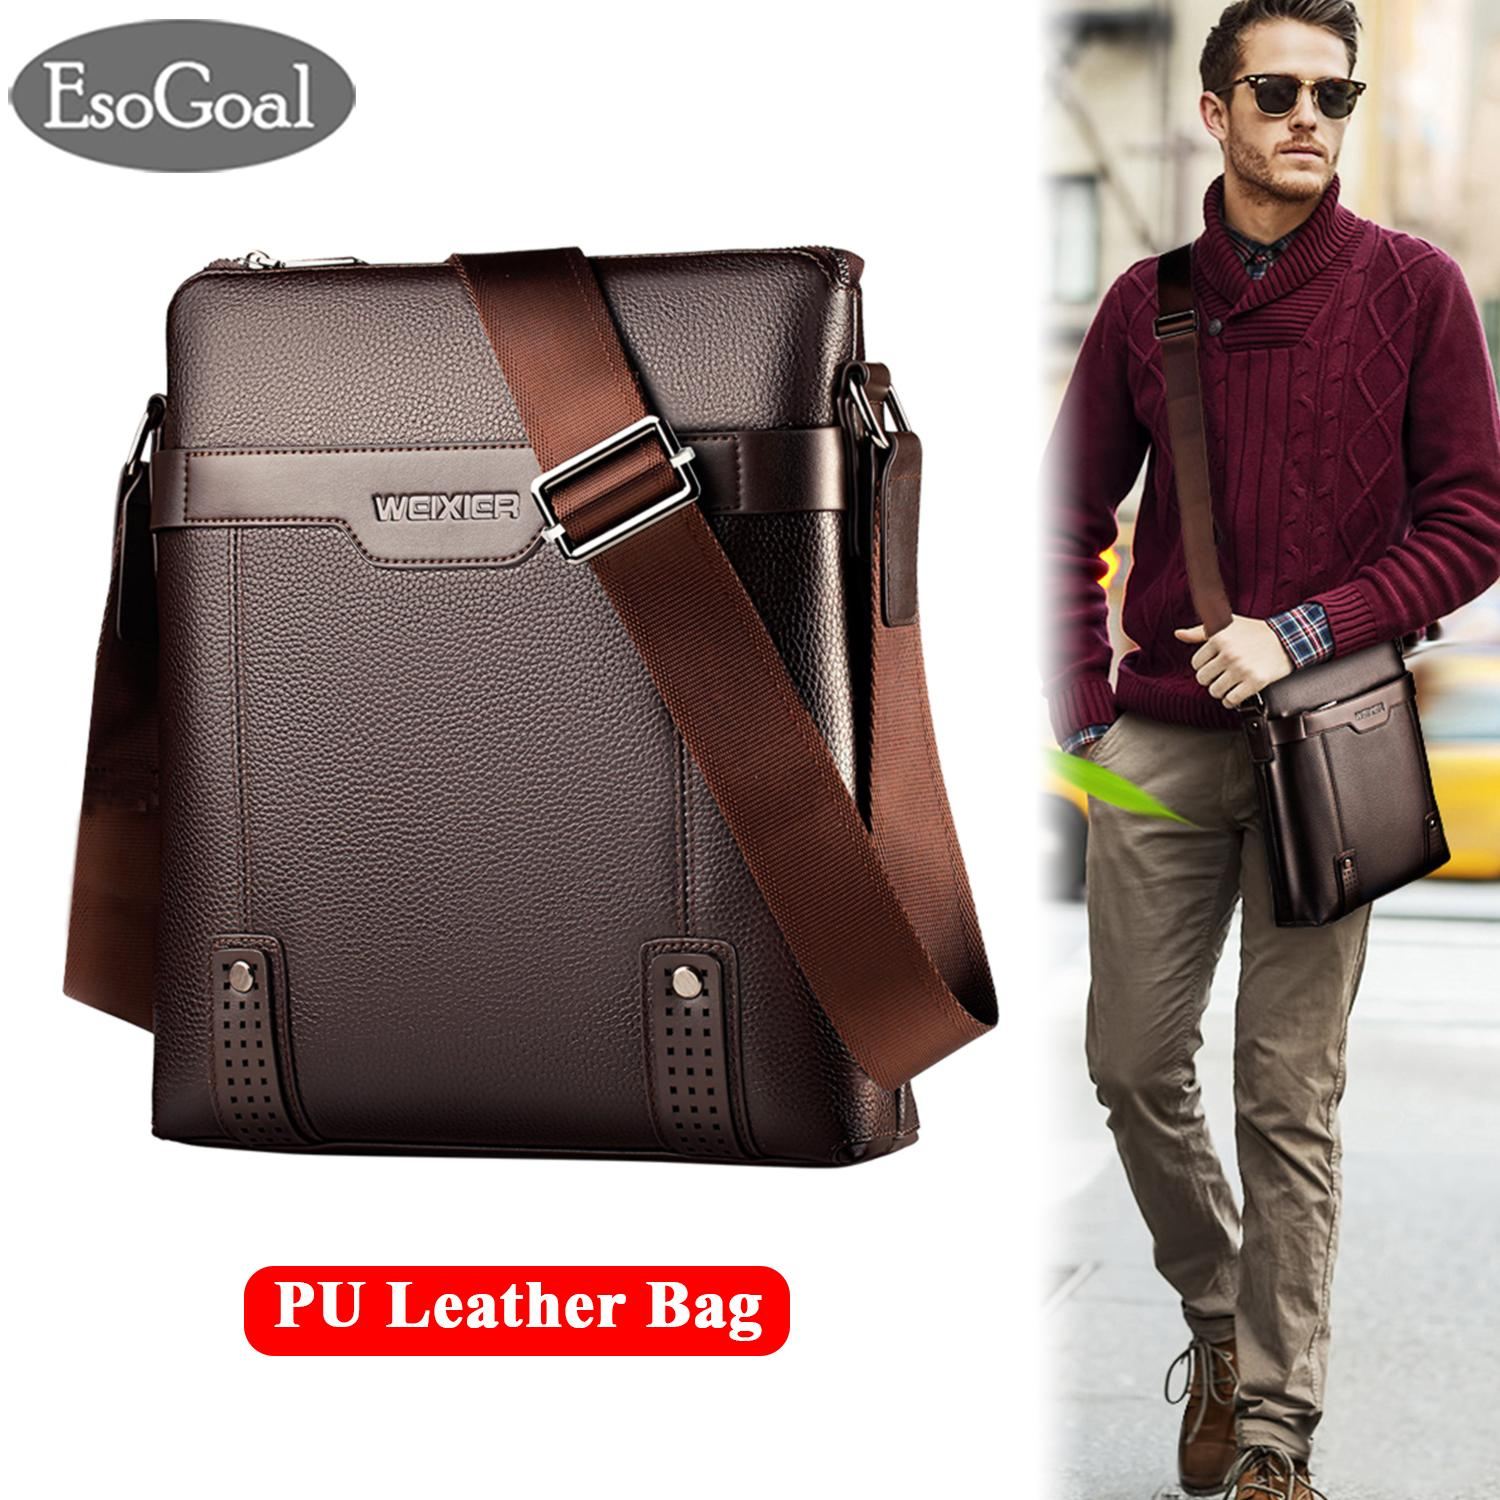 Esogoal Men Messenger Bag Pu Leather Sling Shoulder Crossbody Men Bag Handbag Men Casual Business Fashion Bag By Esogoal.